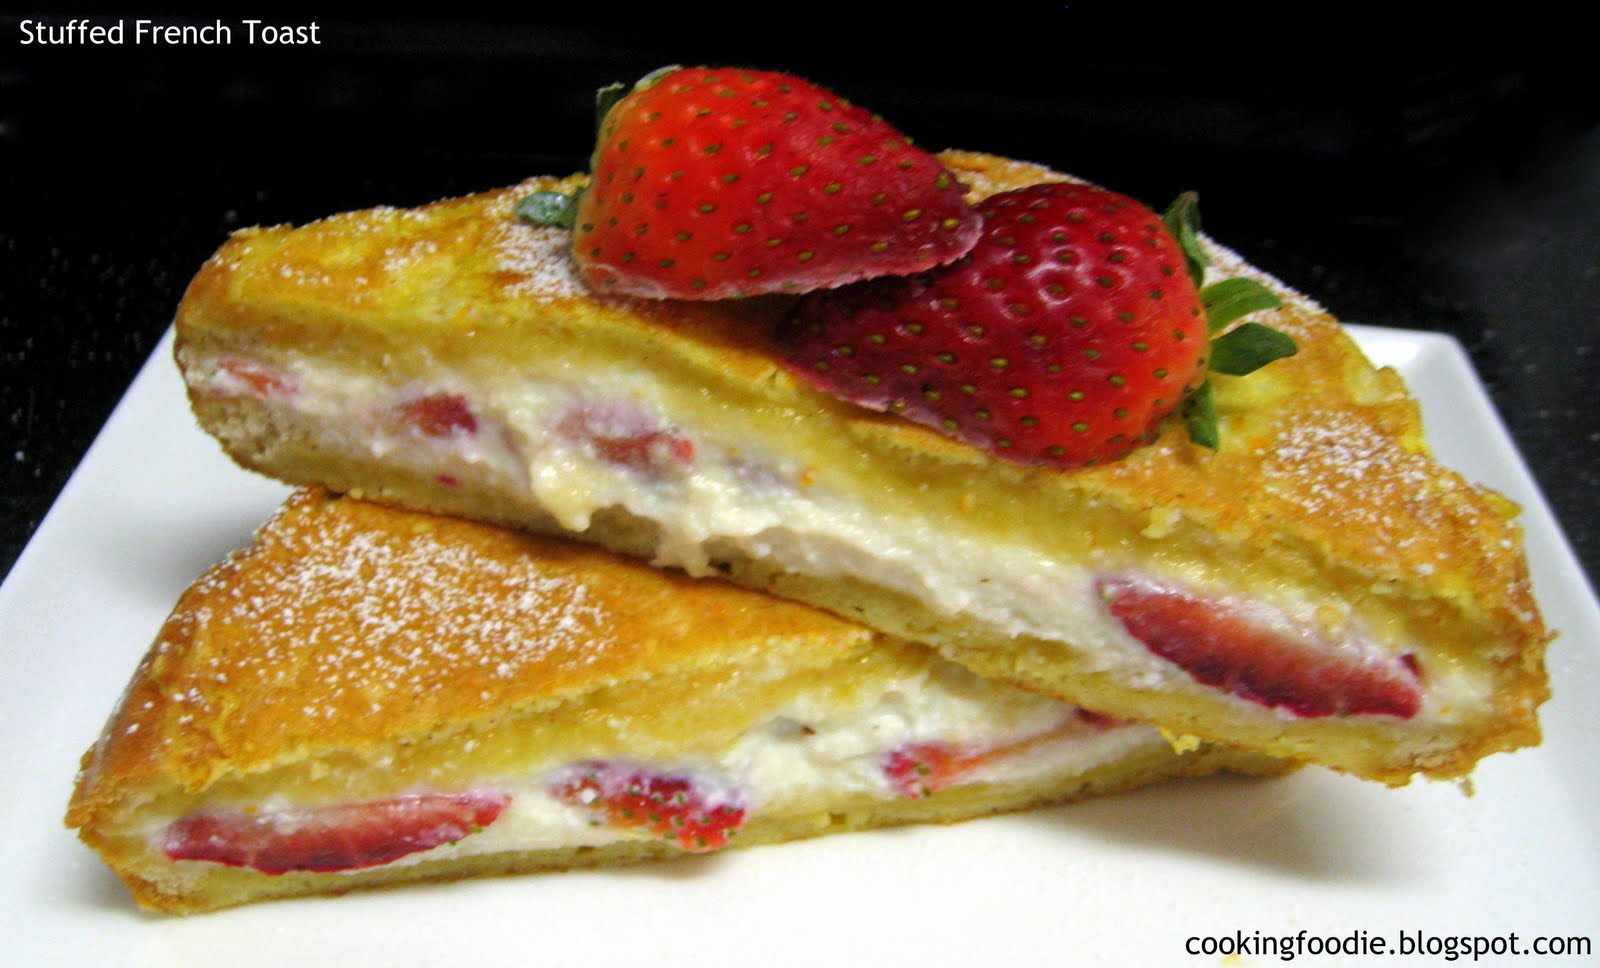 365 days of Eating: Strawberry and Ricotta Stuffed French Toast